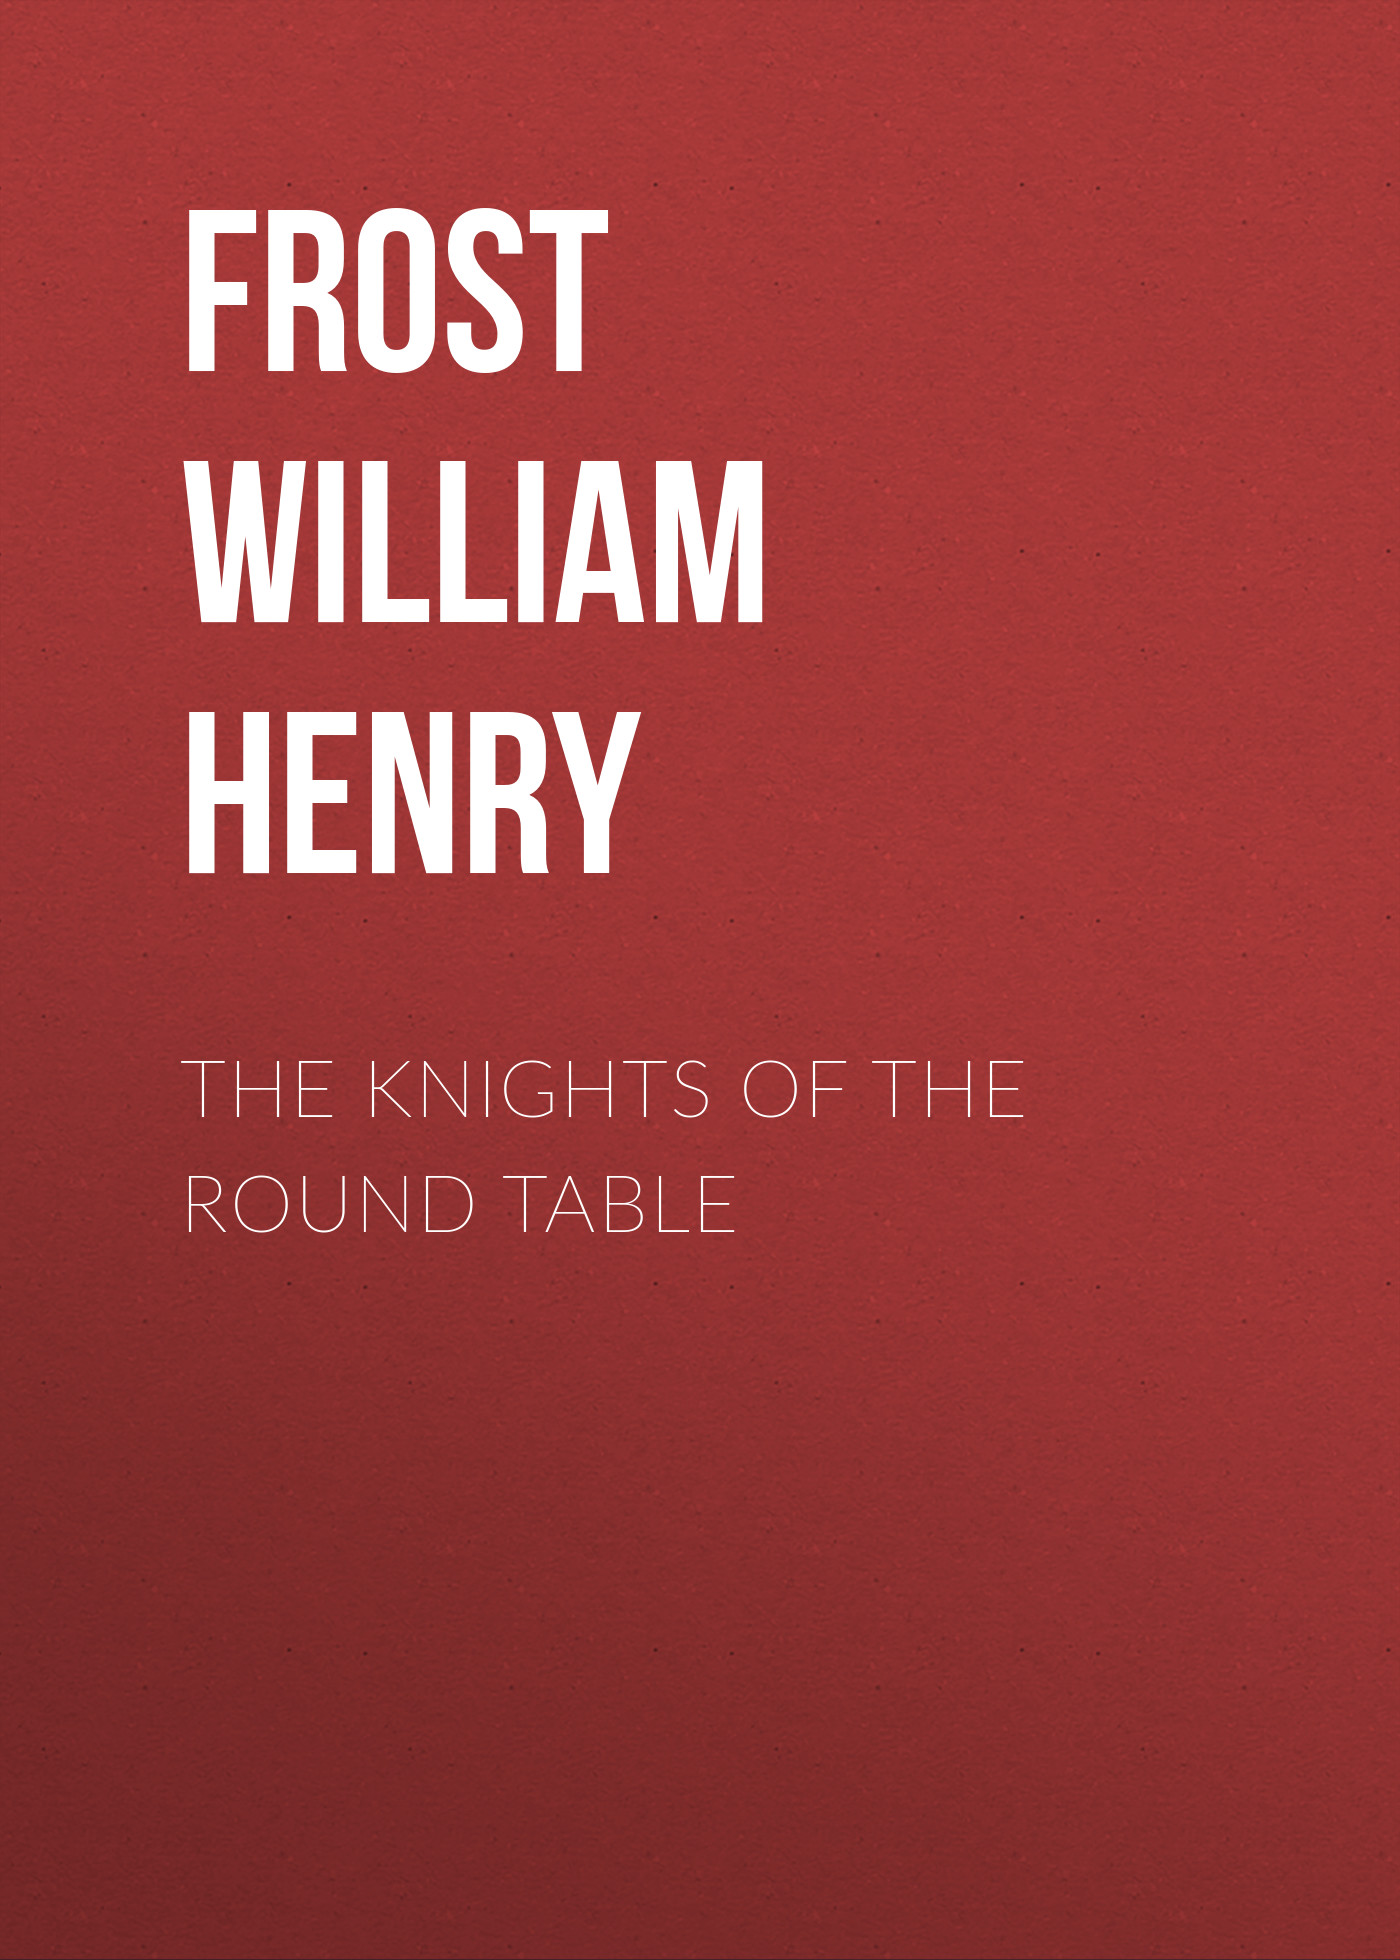 Frost William Henry The Knights of the Round Table bennett william henry the expositor s bible the books of chronicles